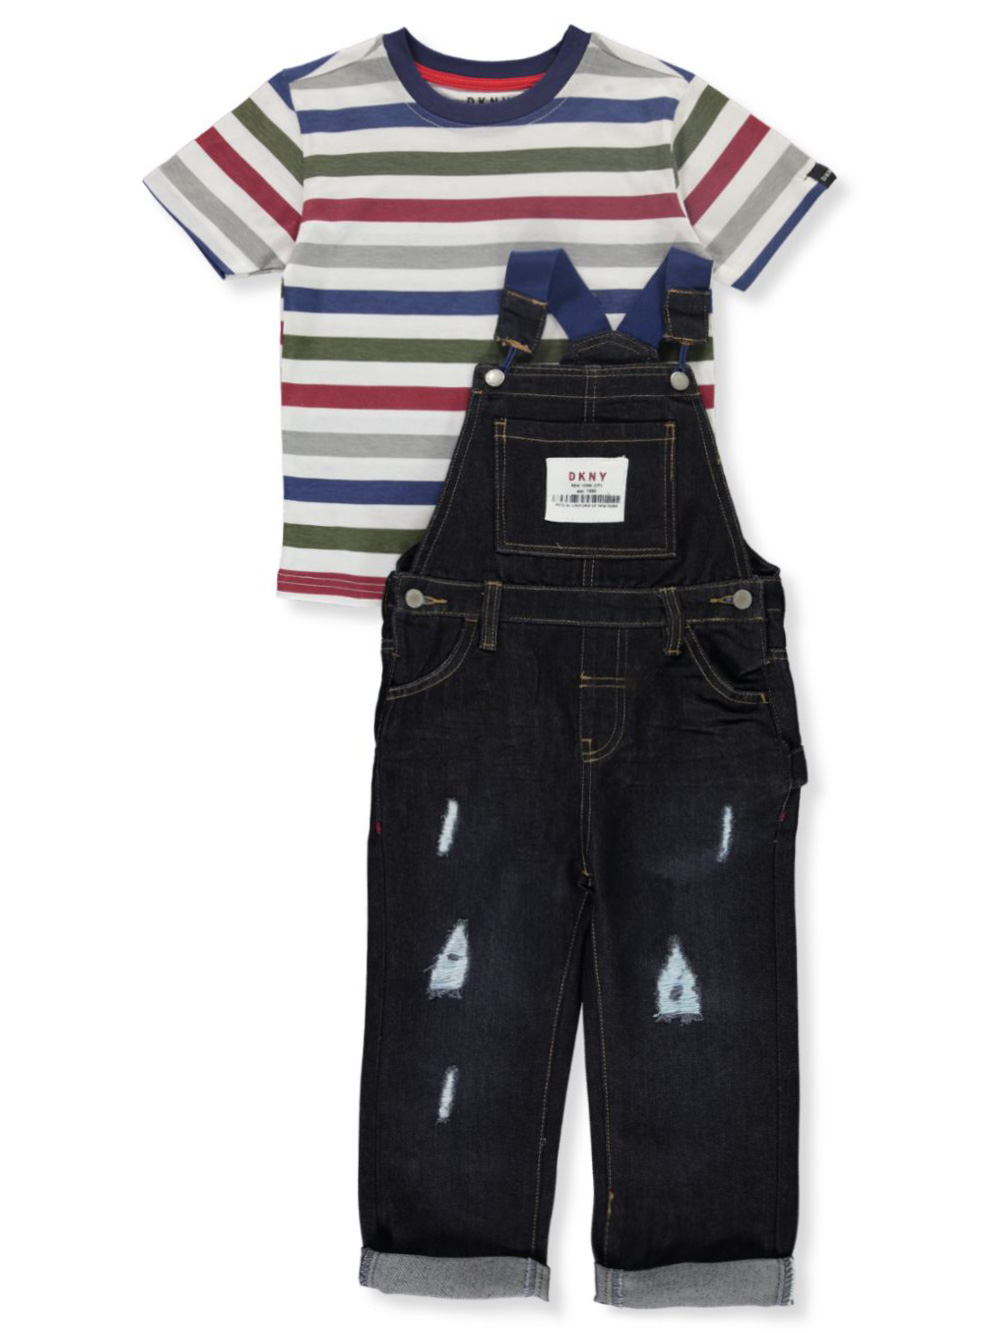 Pant Sets 2-Piece Overalls Set Outfit